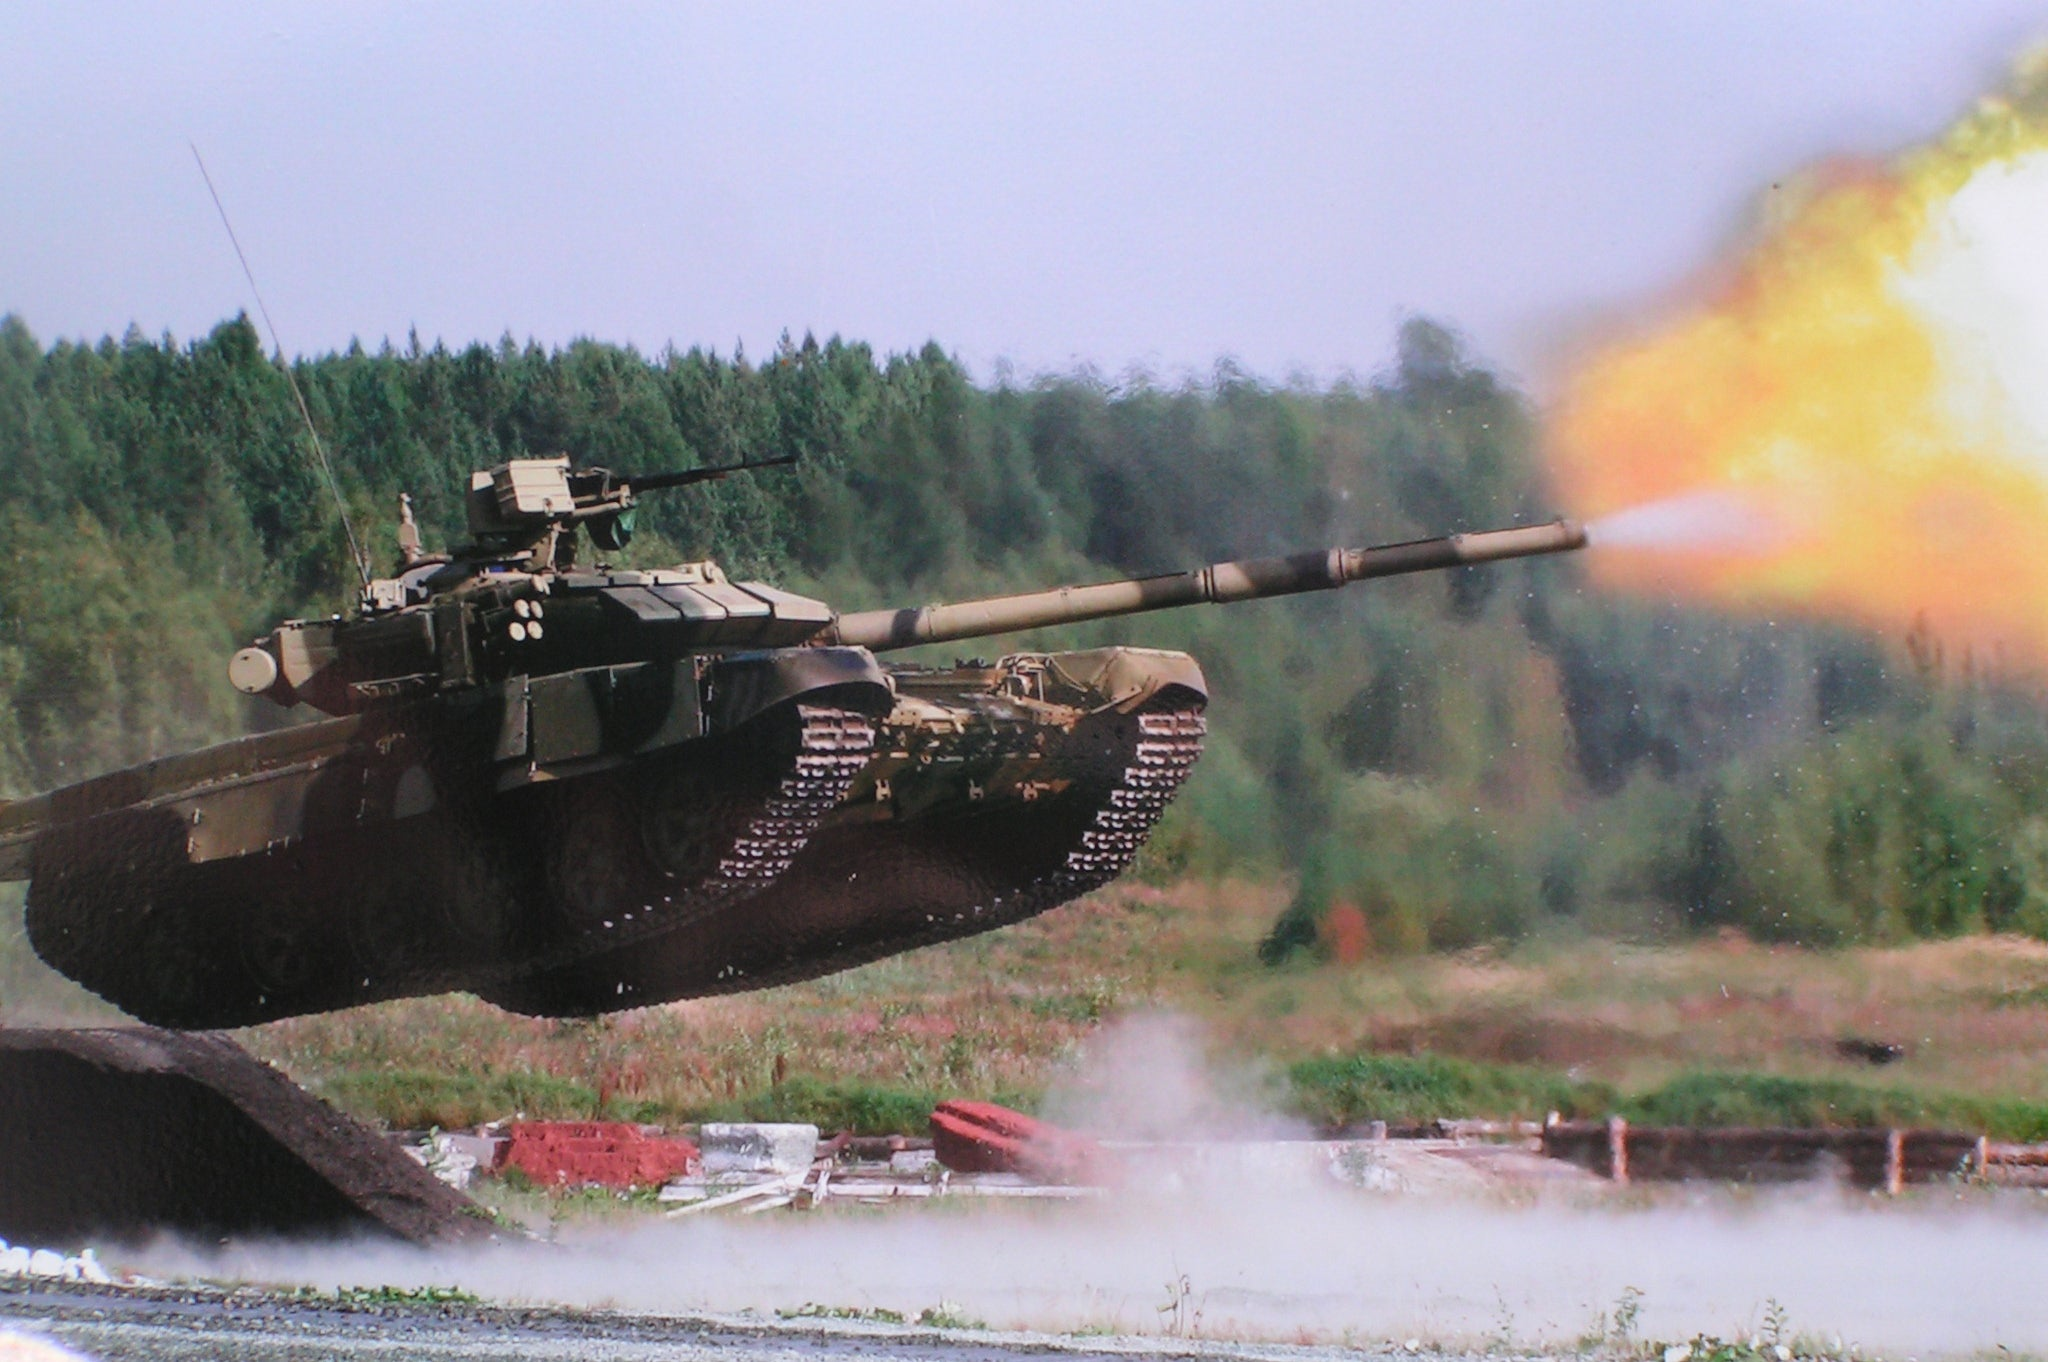 Flying tank fires its cannon